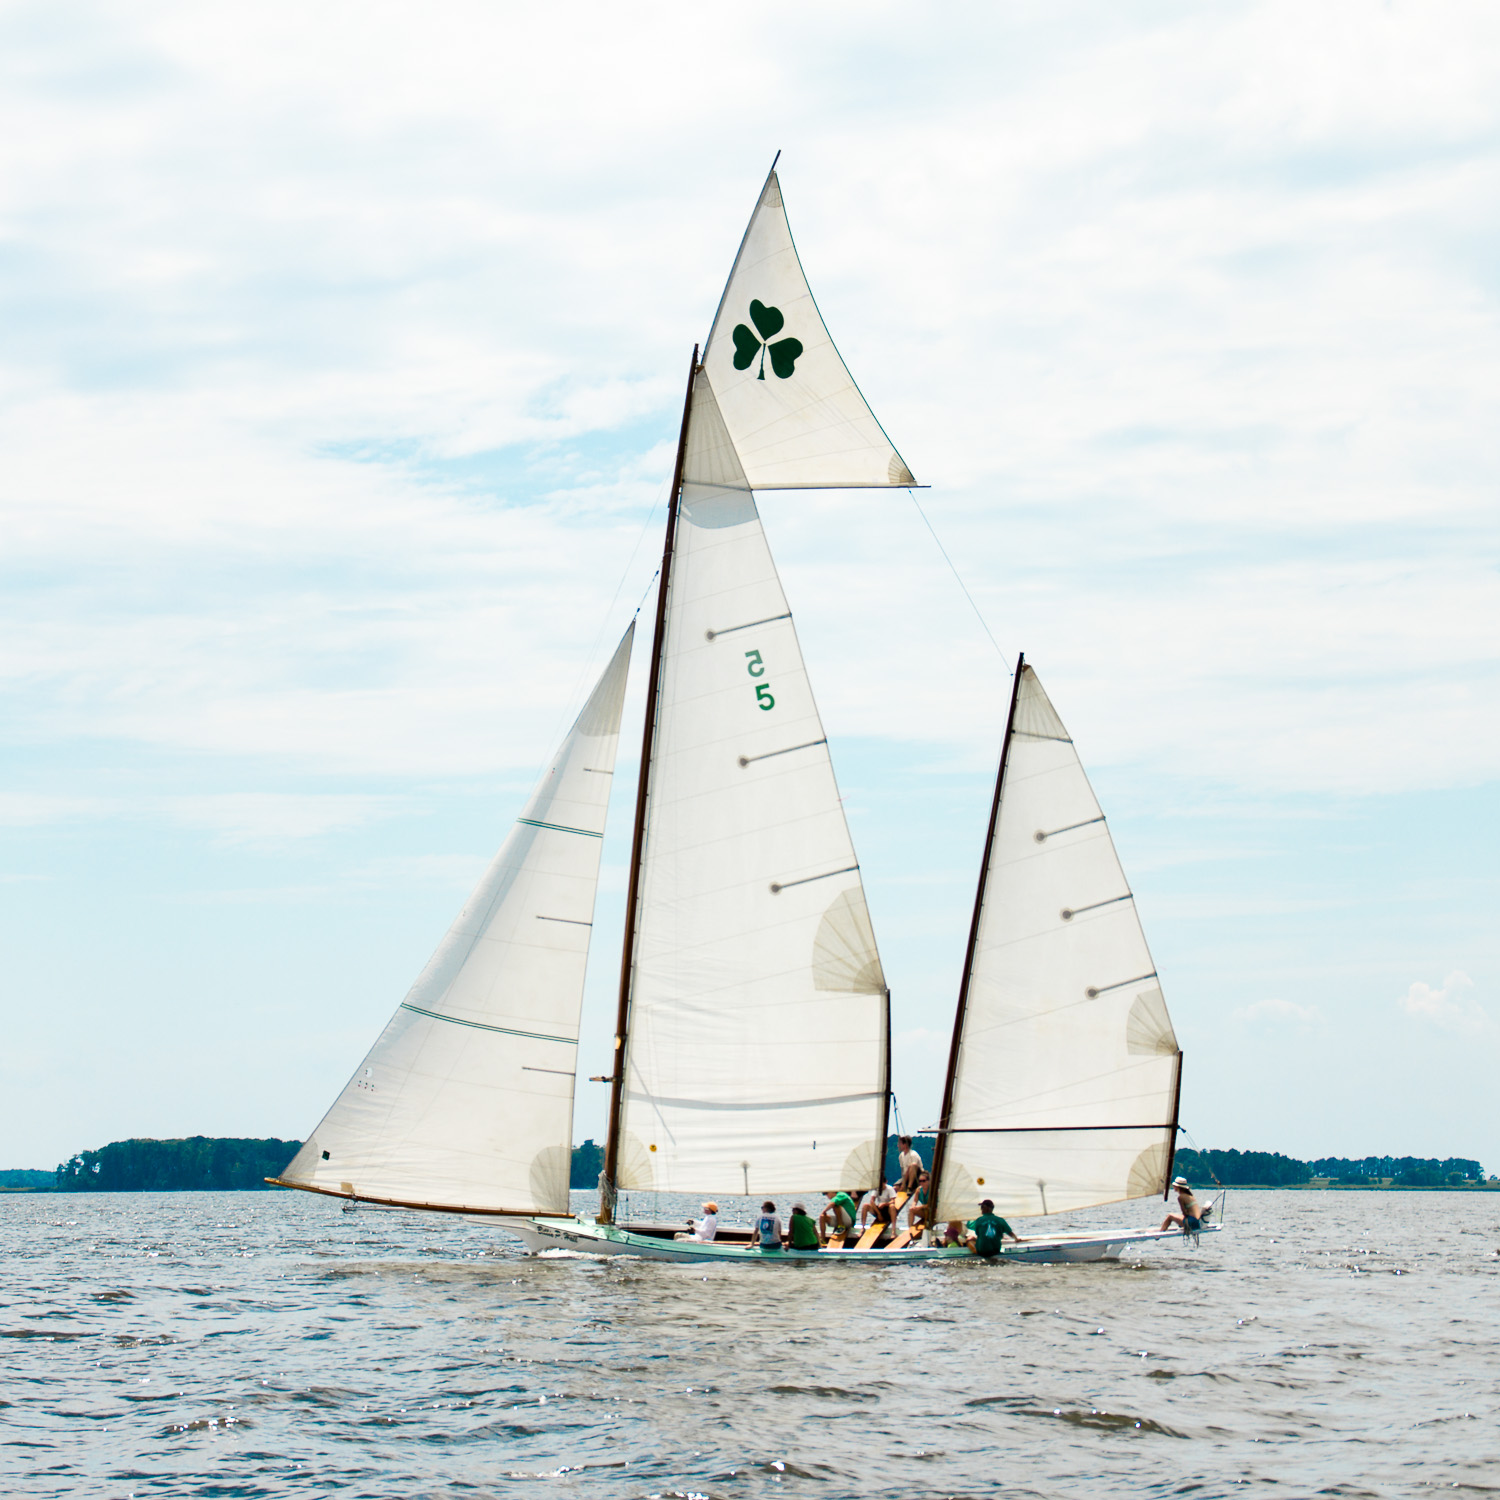 Log-Canoe-Race-at-Rock-Hall-Yacht-Club-July-2016-ss-14.jpg